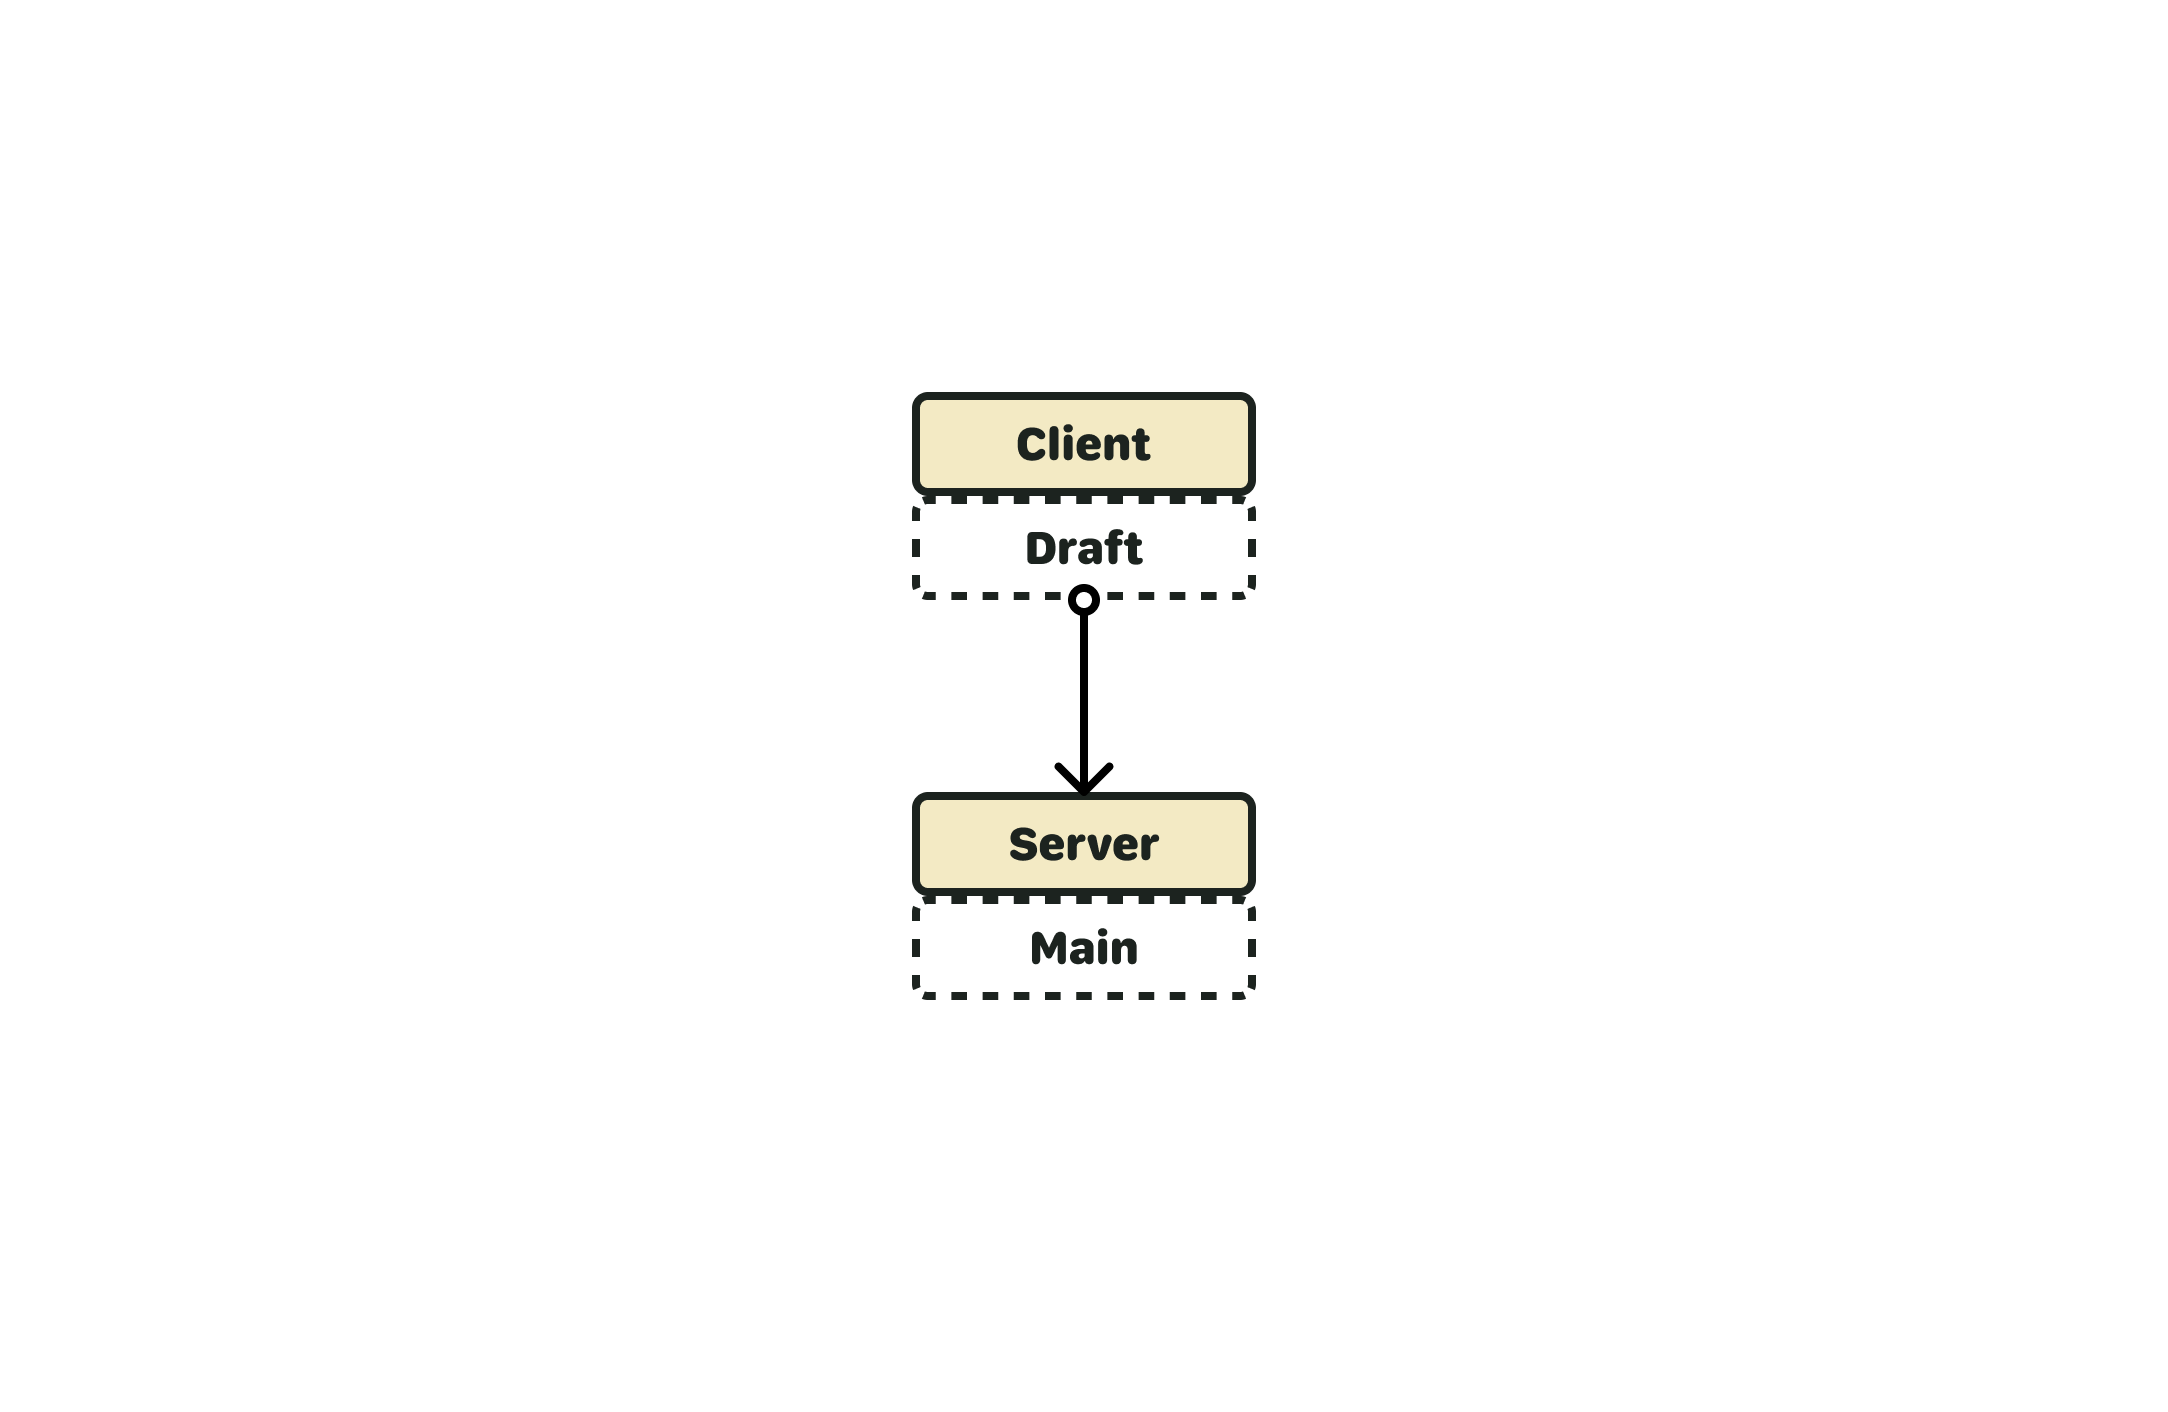 """Diagram of a client server relationship. The client is """"holding"""" a draft copy of the data, and the server is """"holding"""" an authoritative main copy of the data."""